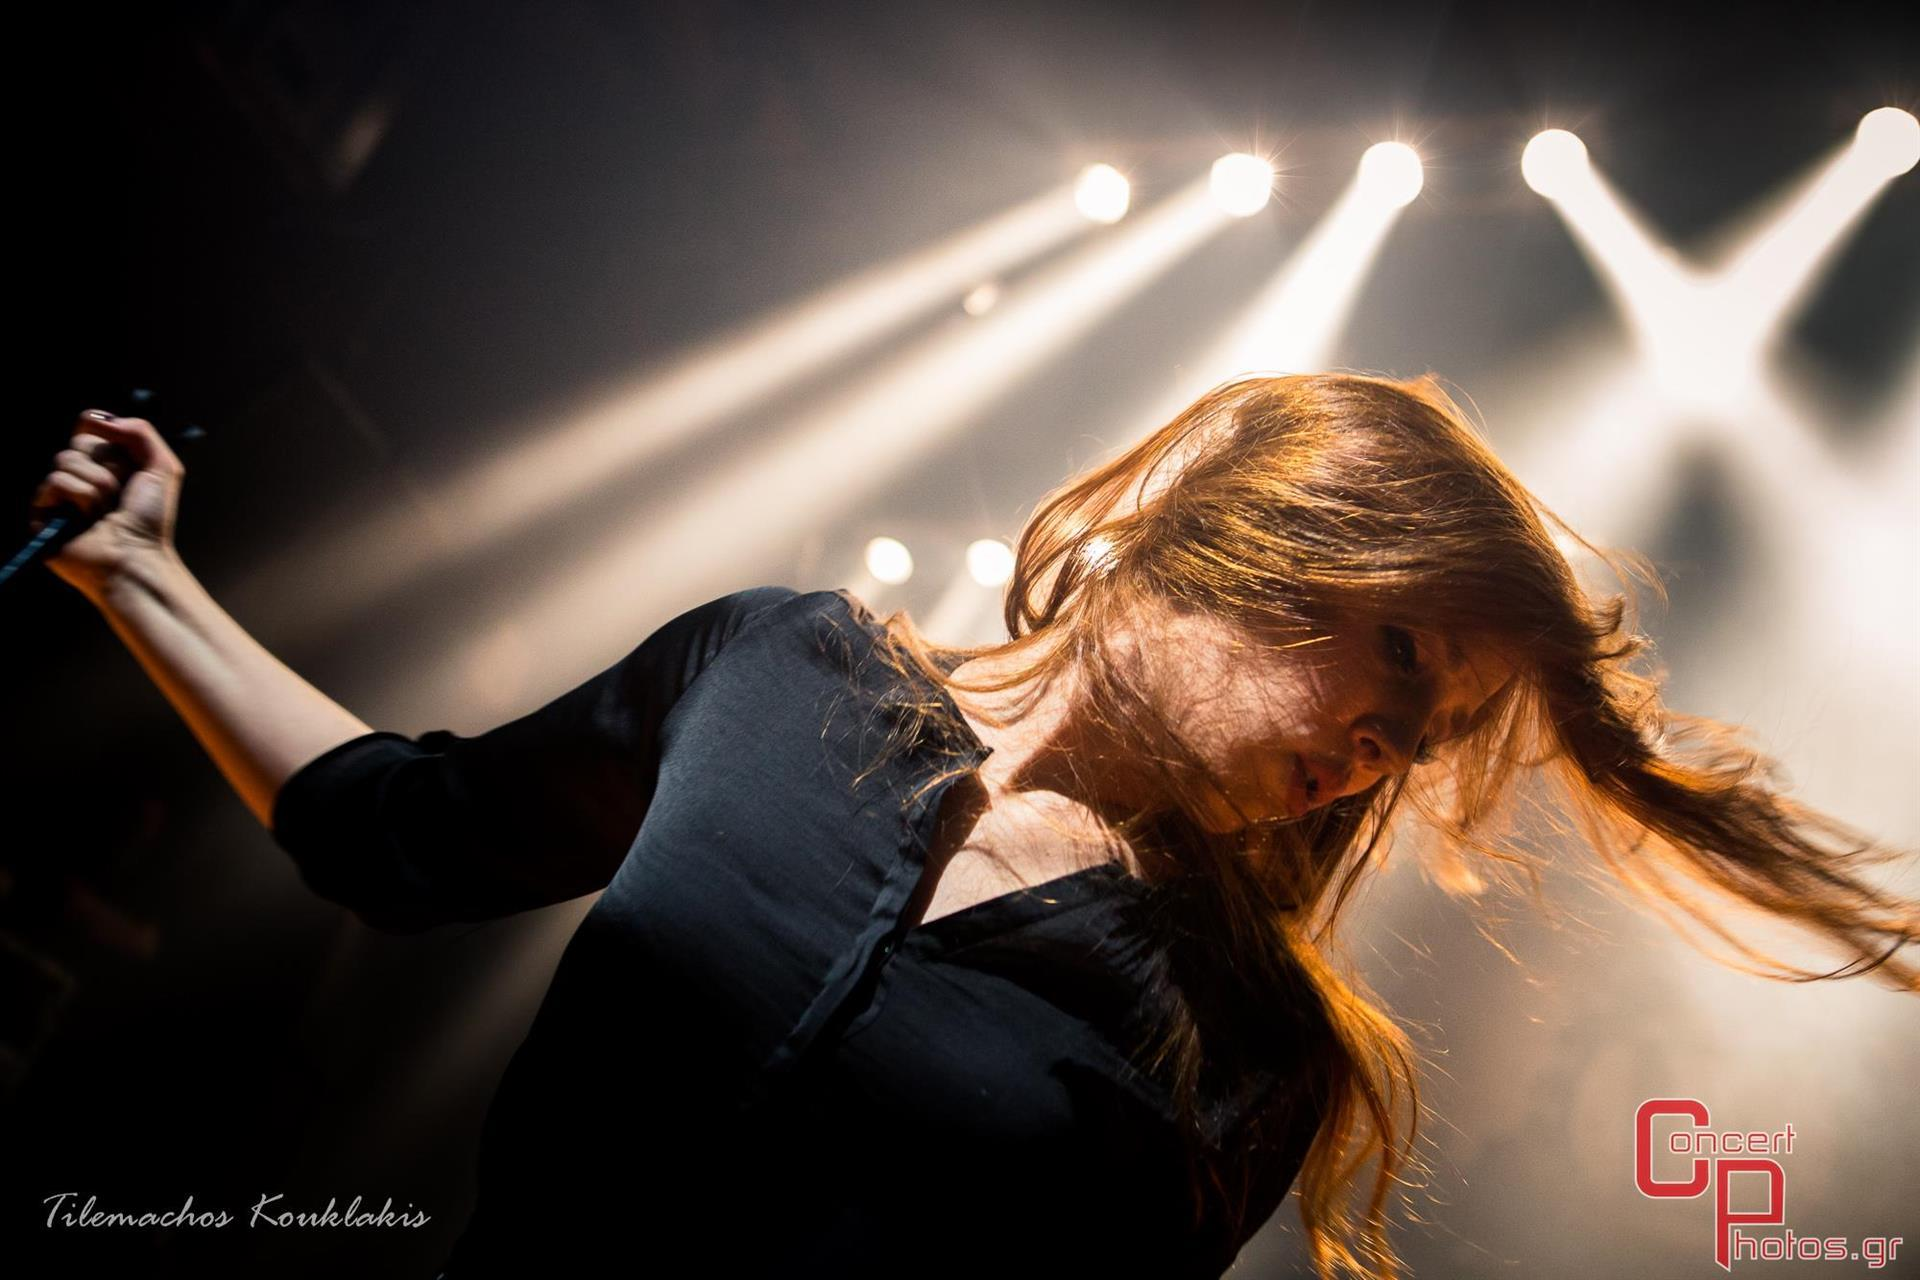 EPICA Jaded Star Fuzz Club-EPICA Jaded Star Fuzz Club photographer:  - Epica_25